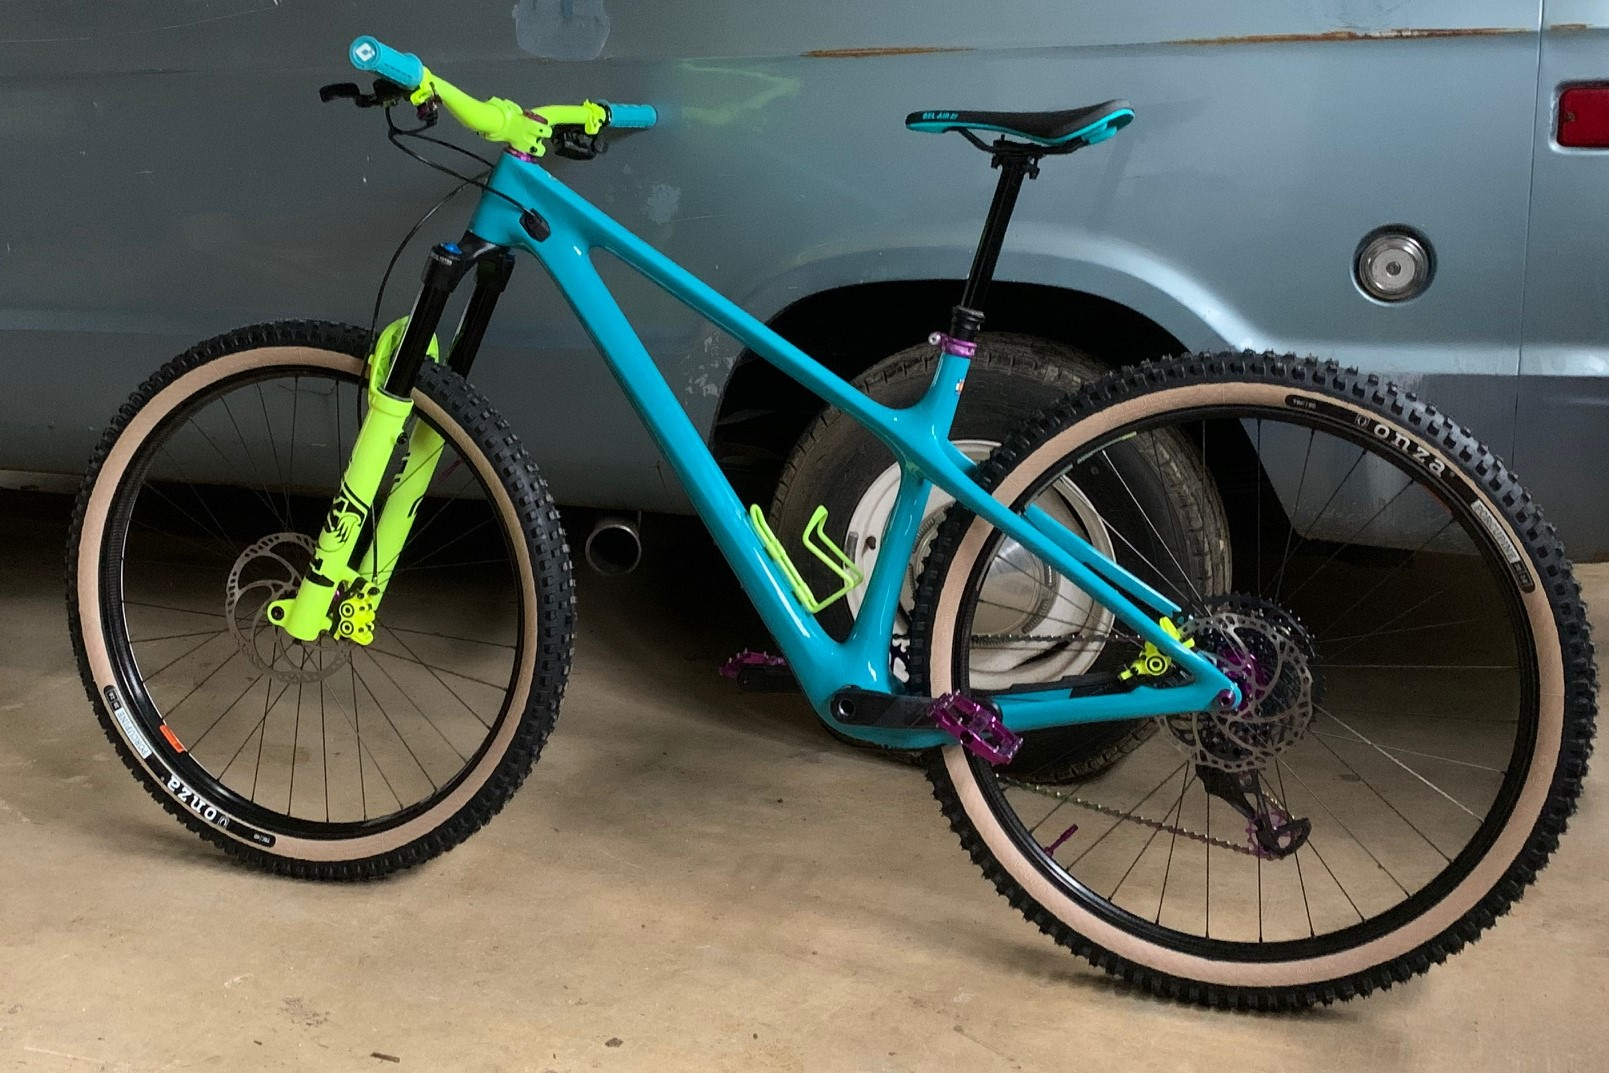 This custom Yeti ARC is a different take on the enduro hardtail idea